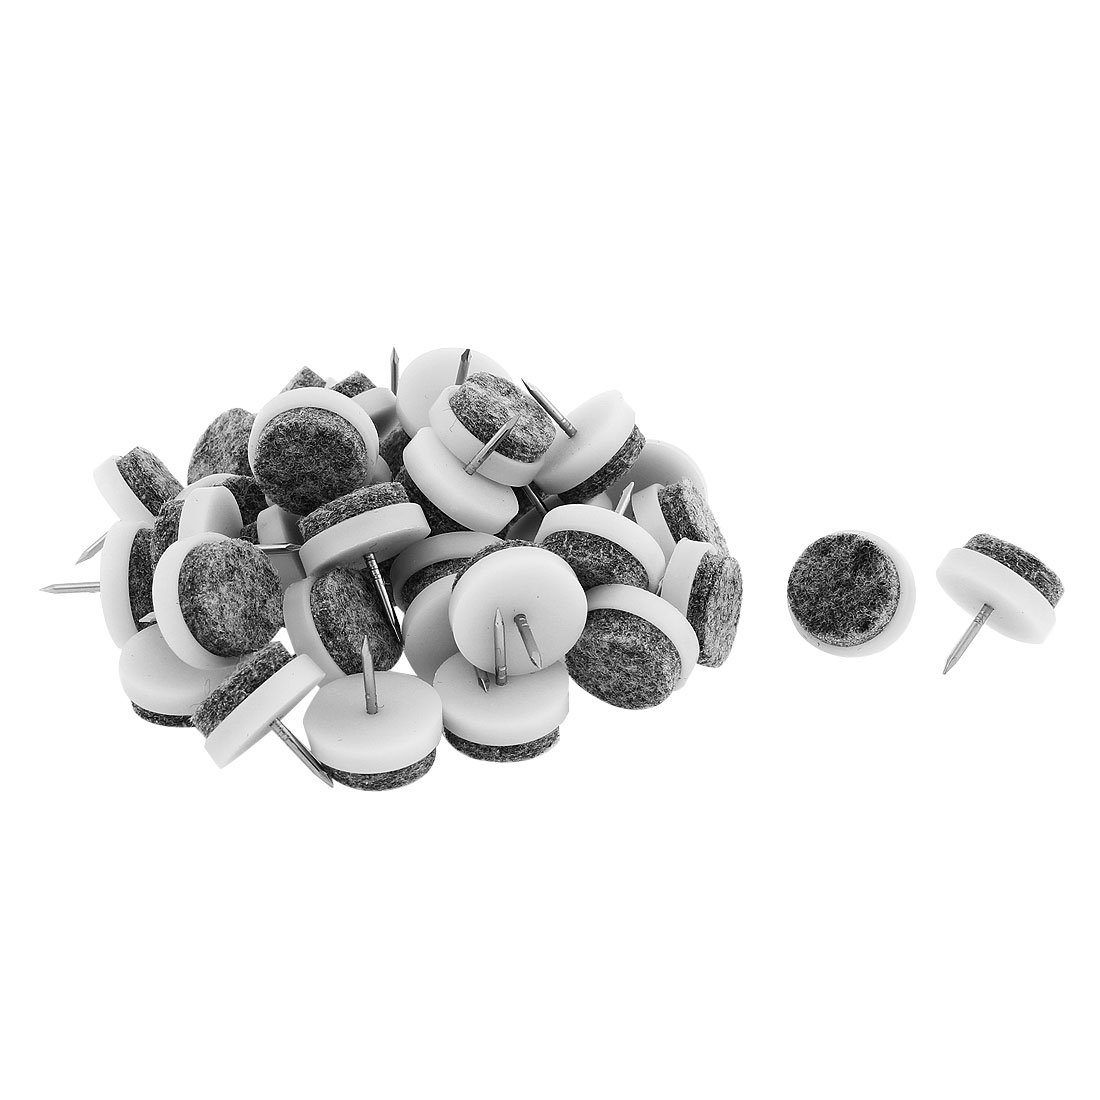 Furniture Table Feet Leg Nail Protectors 20mm Dia 40PCS